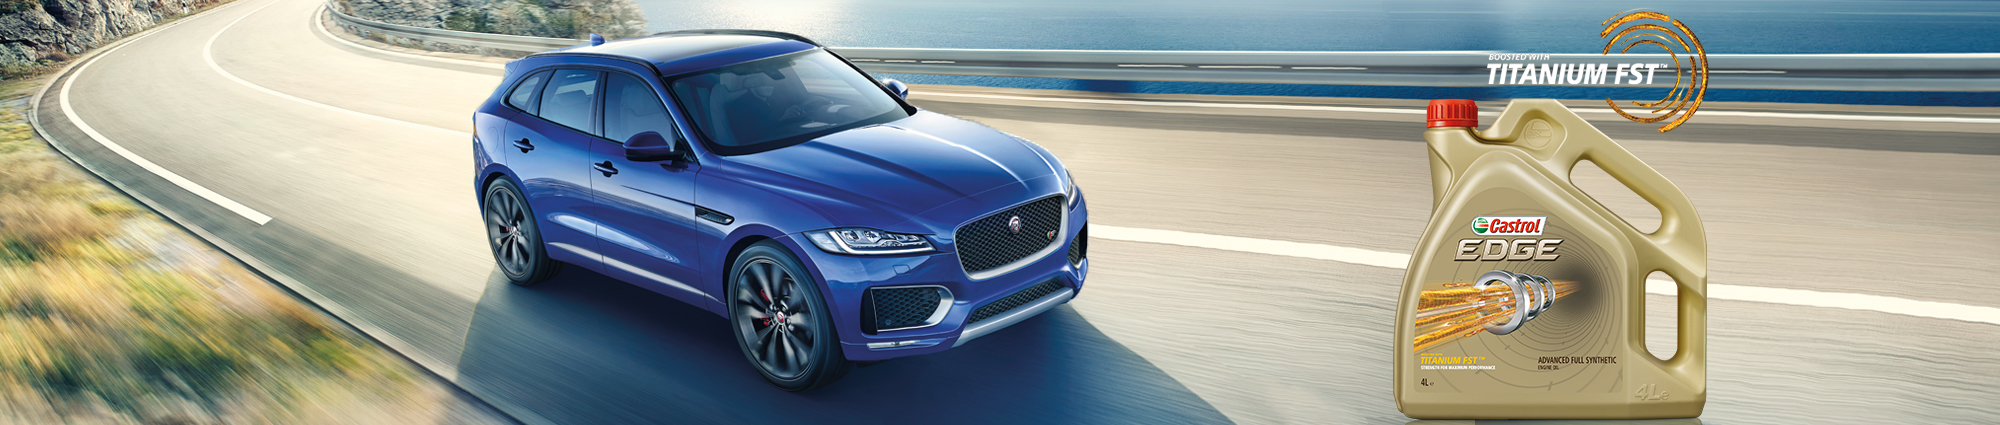 Jaguar Chooses Castrol EDGE